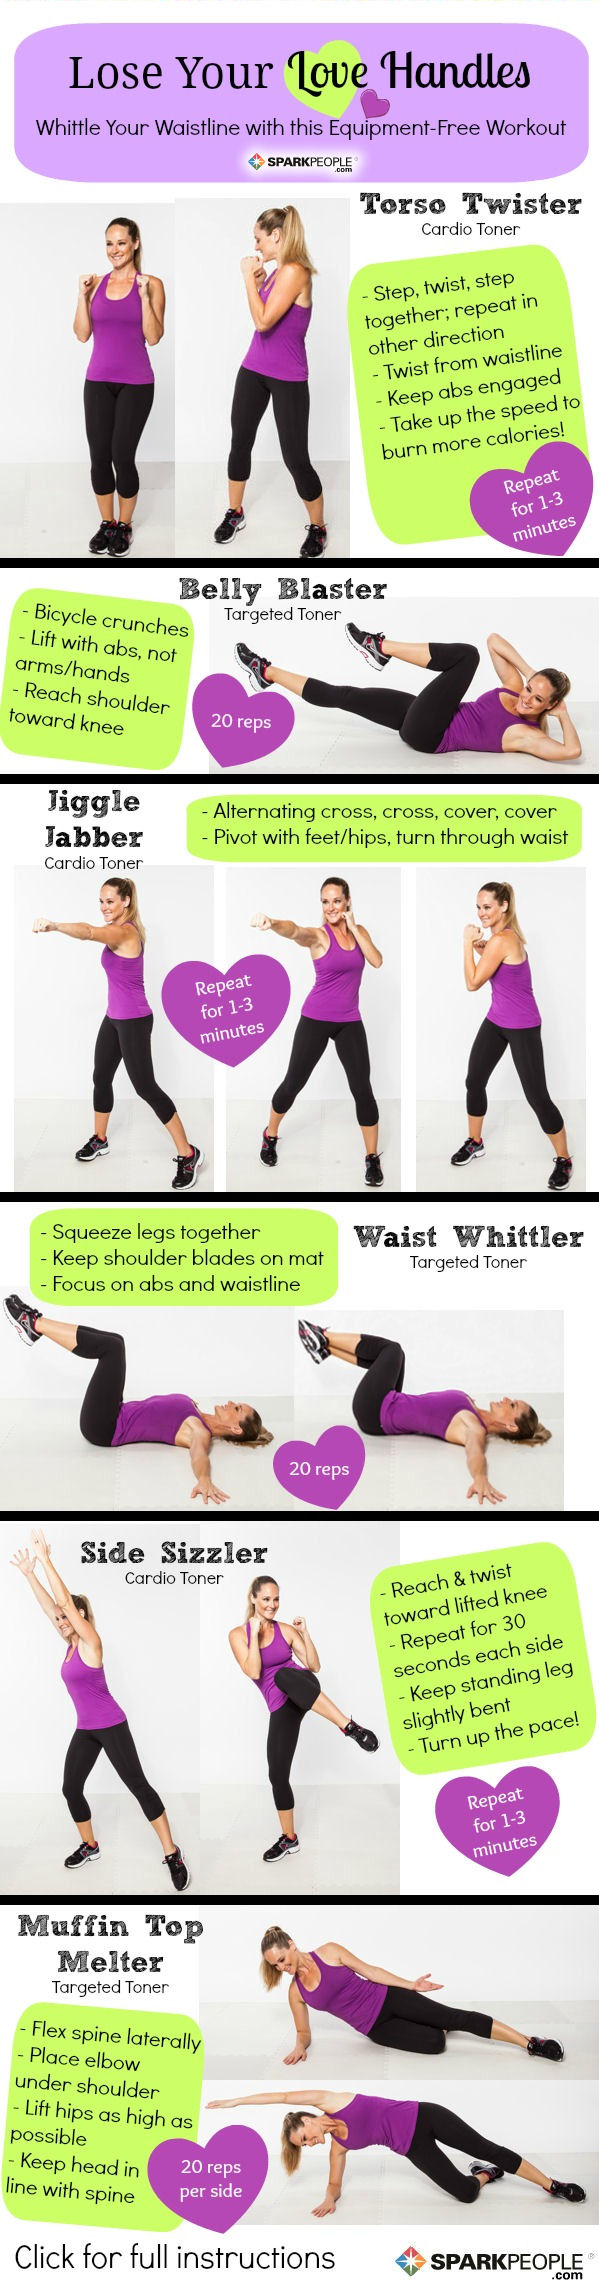 The 'Lose Your Love Handles' Workout | SparkPeople